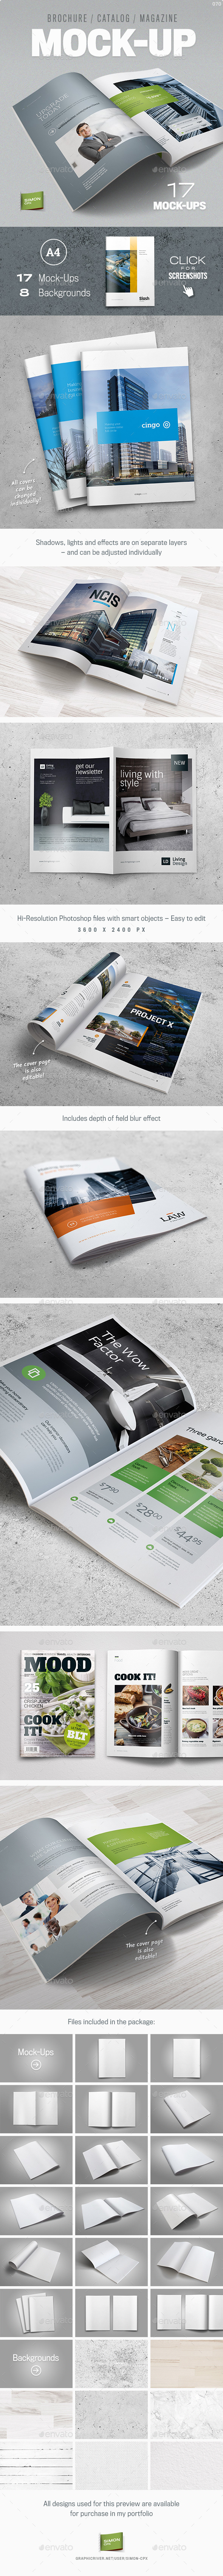 Mock-Up for Brochure / Catalog / Magazine - Photorealistic - A4 - Brochures Print